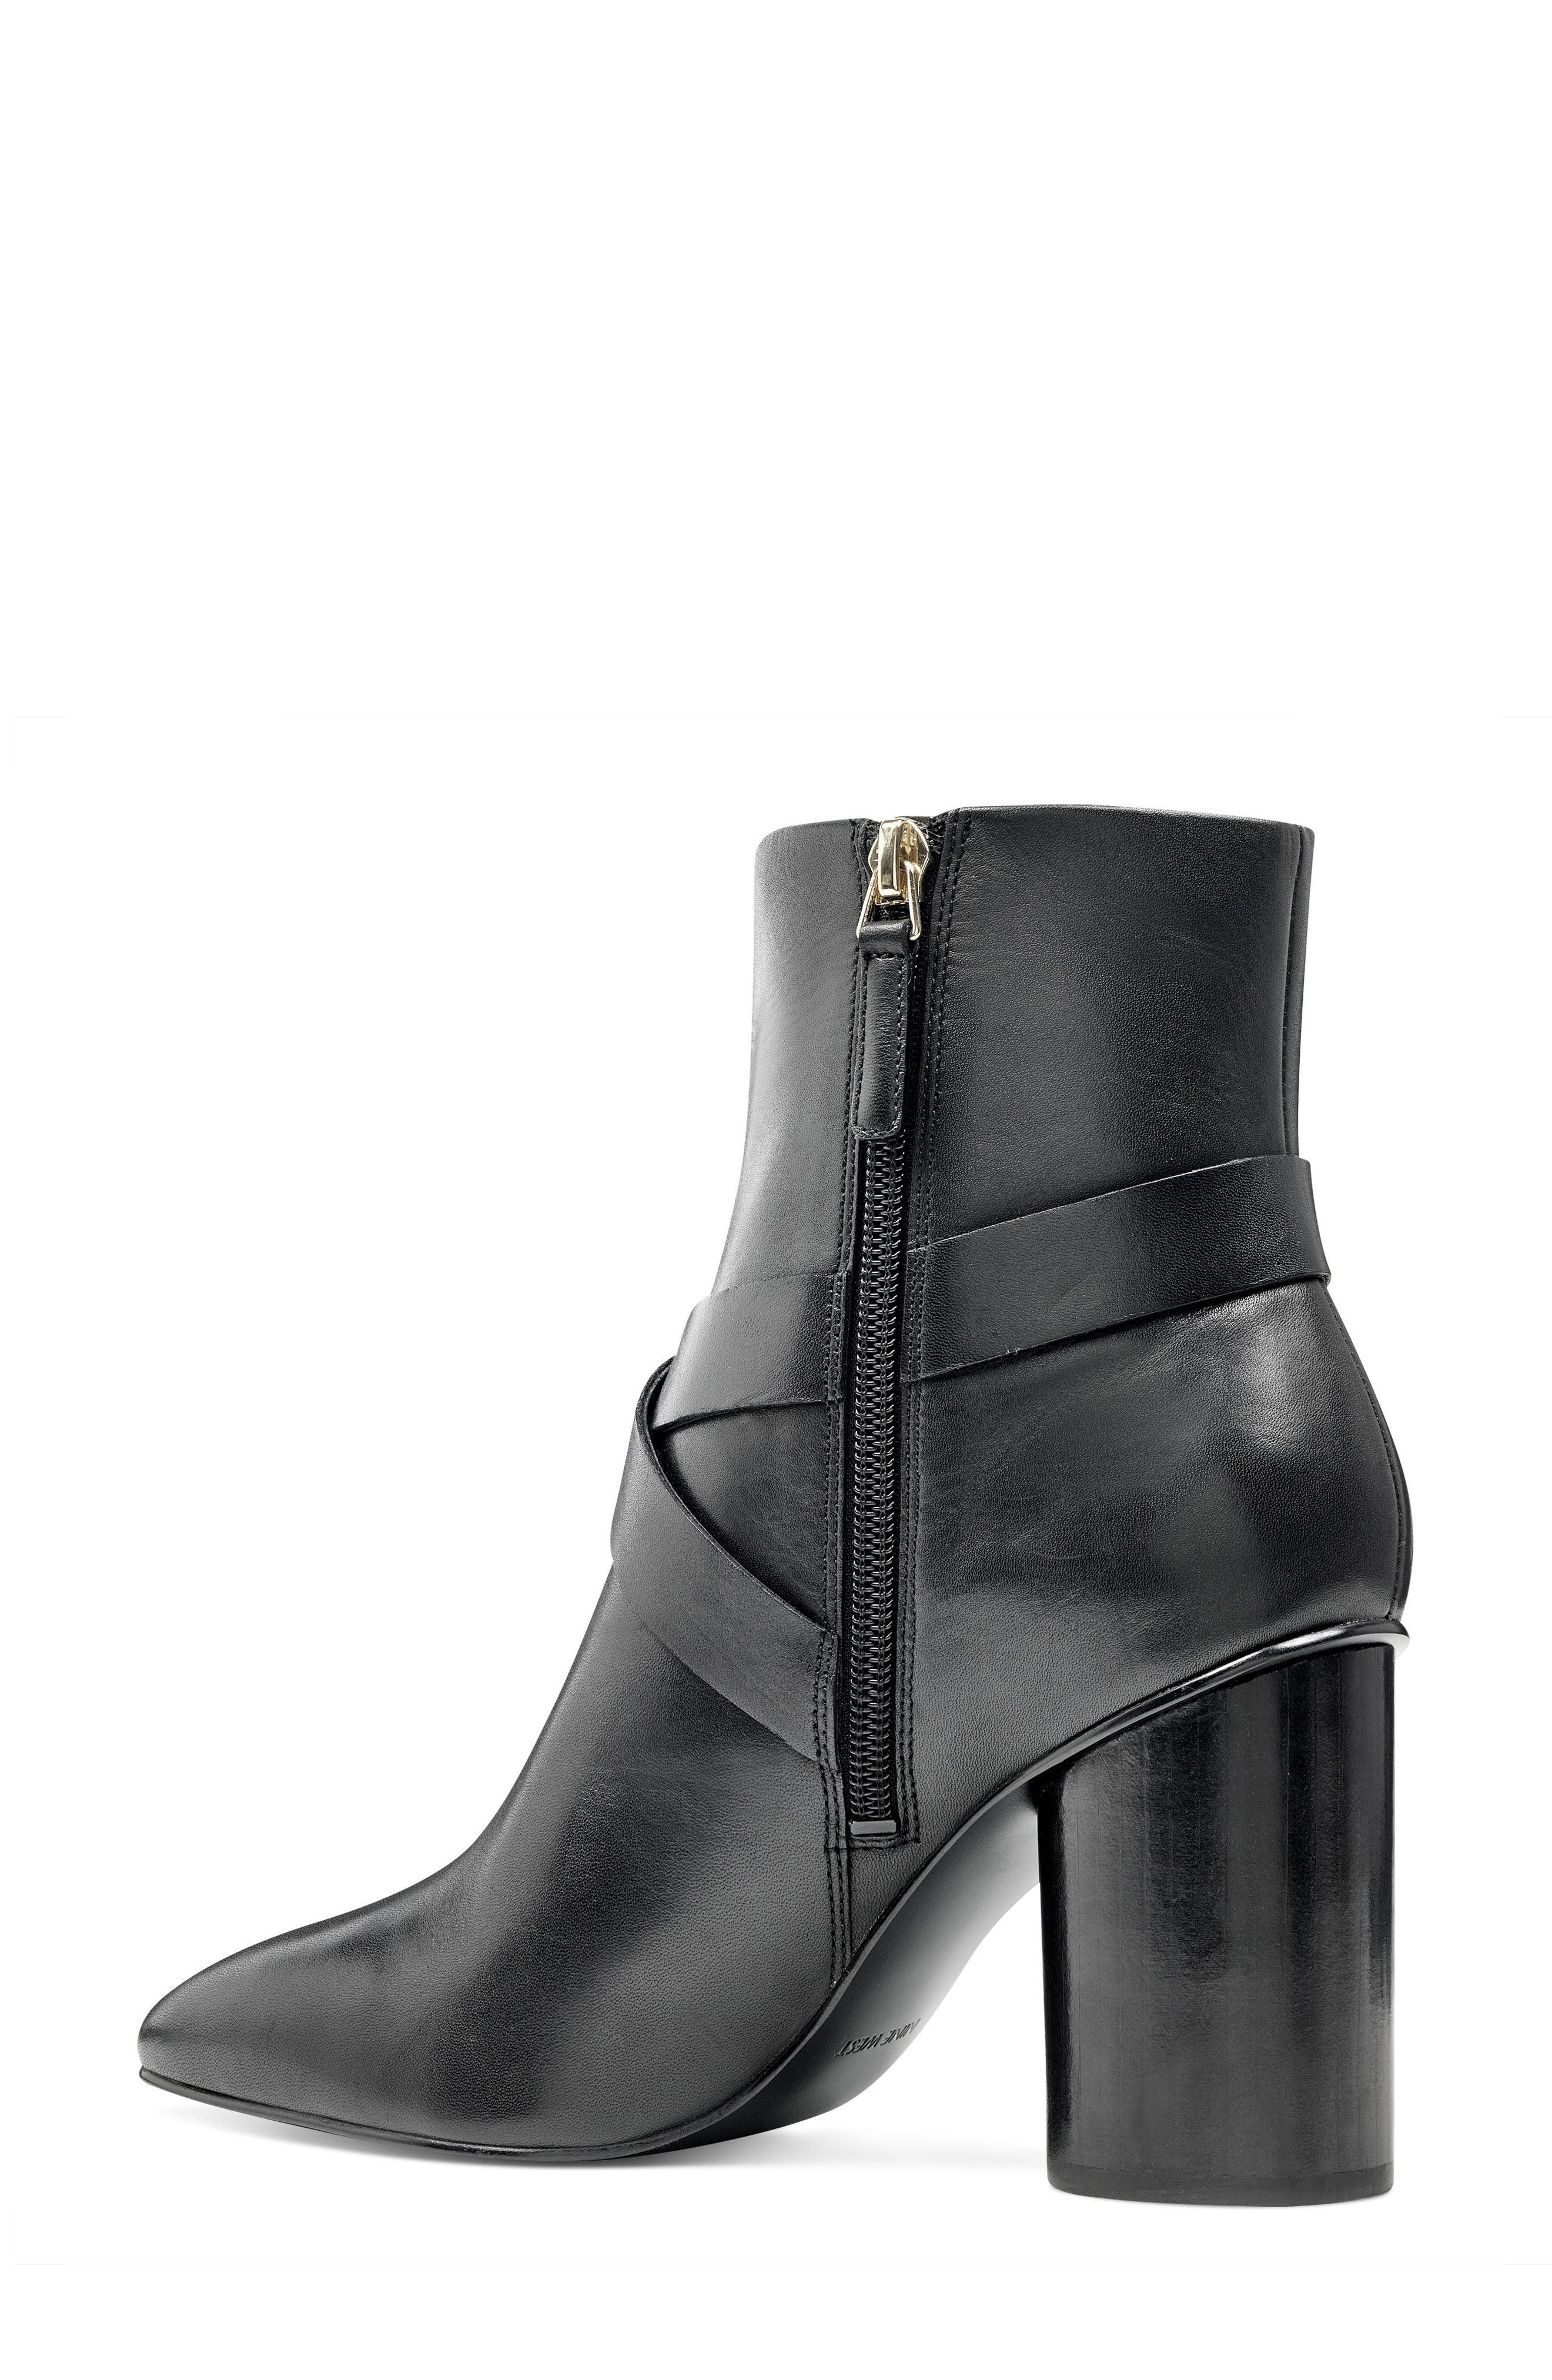 Cavanagh Pointy Toe Bootie,                             Alternate thumbnail 2, color,                             Black Leather